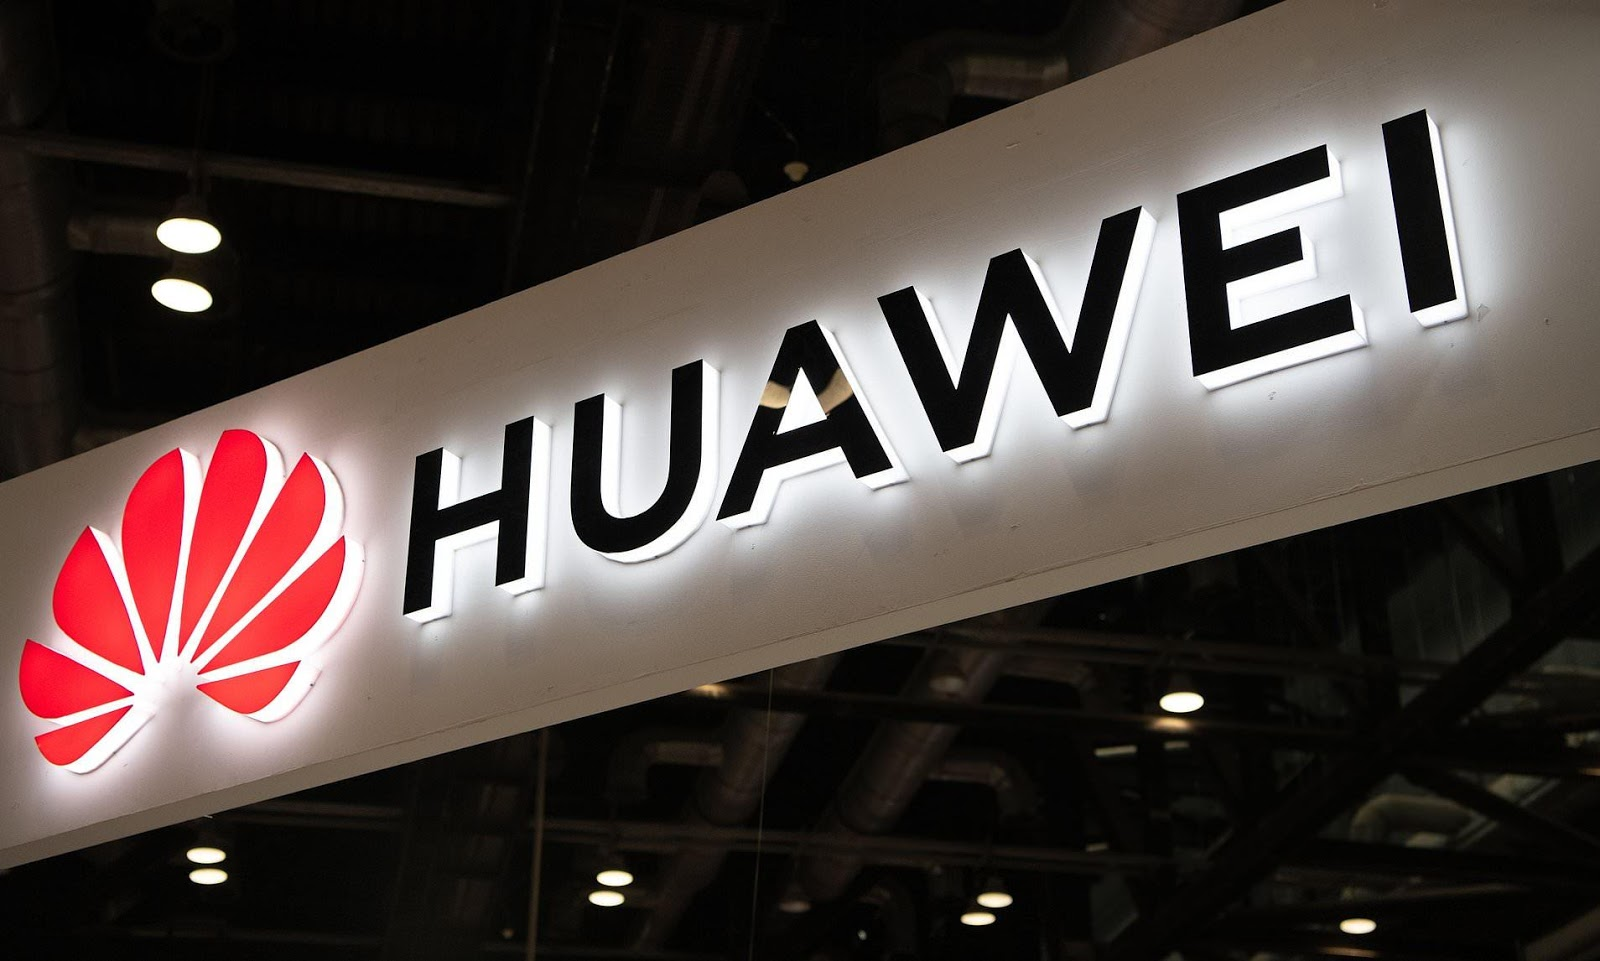 3 reason why Huawei's Harmony OS will be tough on Android 1